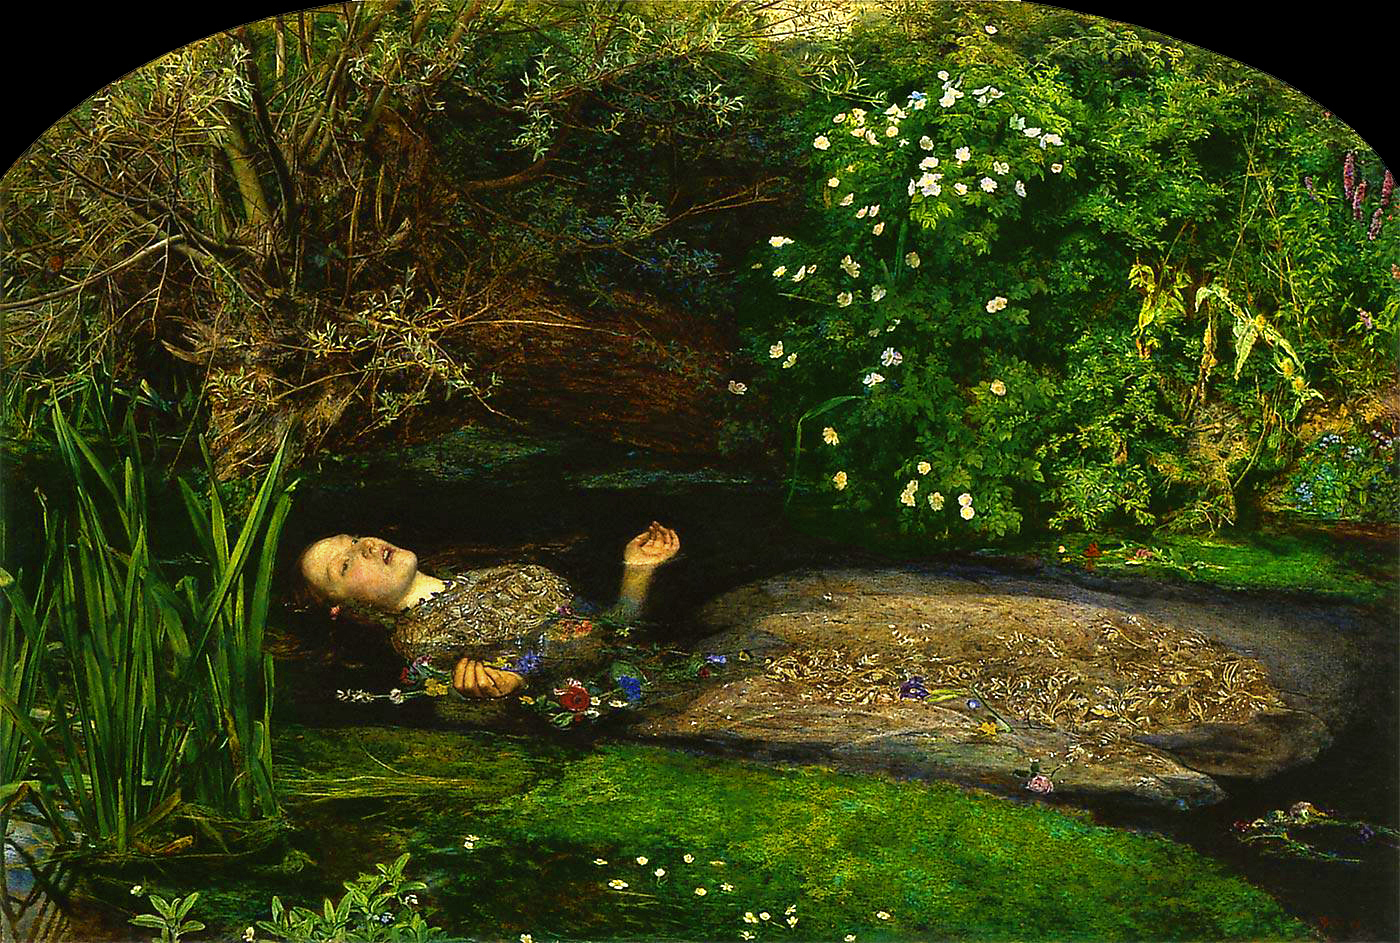 Ophelia at the moment of death, by Millais